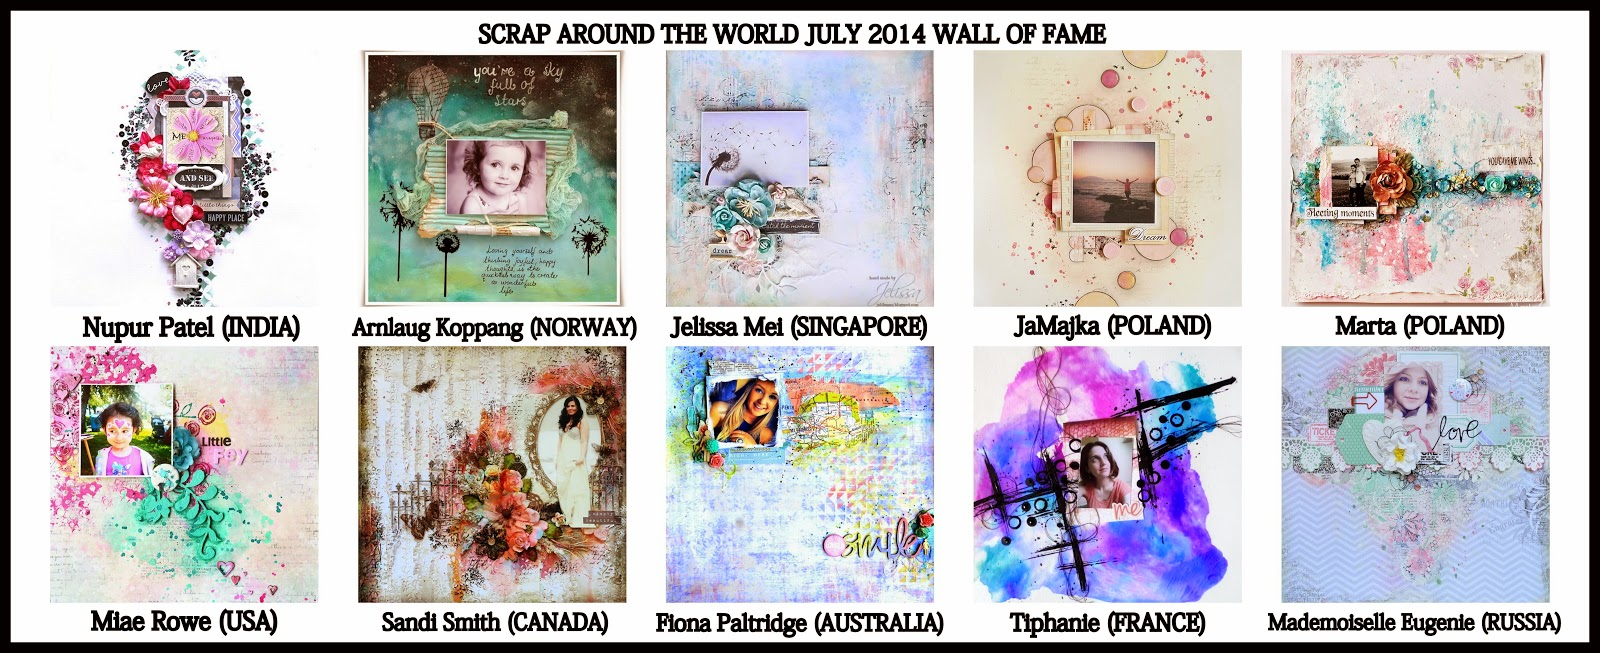 http://scraparoundtheworld.blogspot.gr/2014/08/july-2014-winners-features-finalists.html